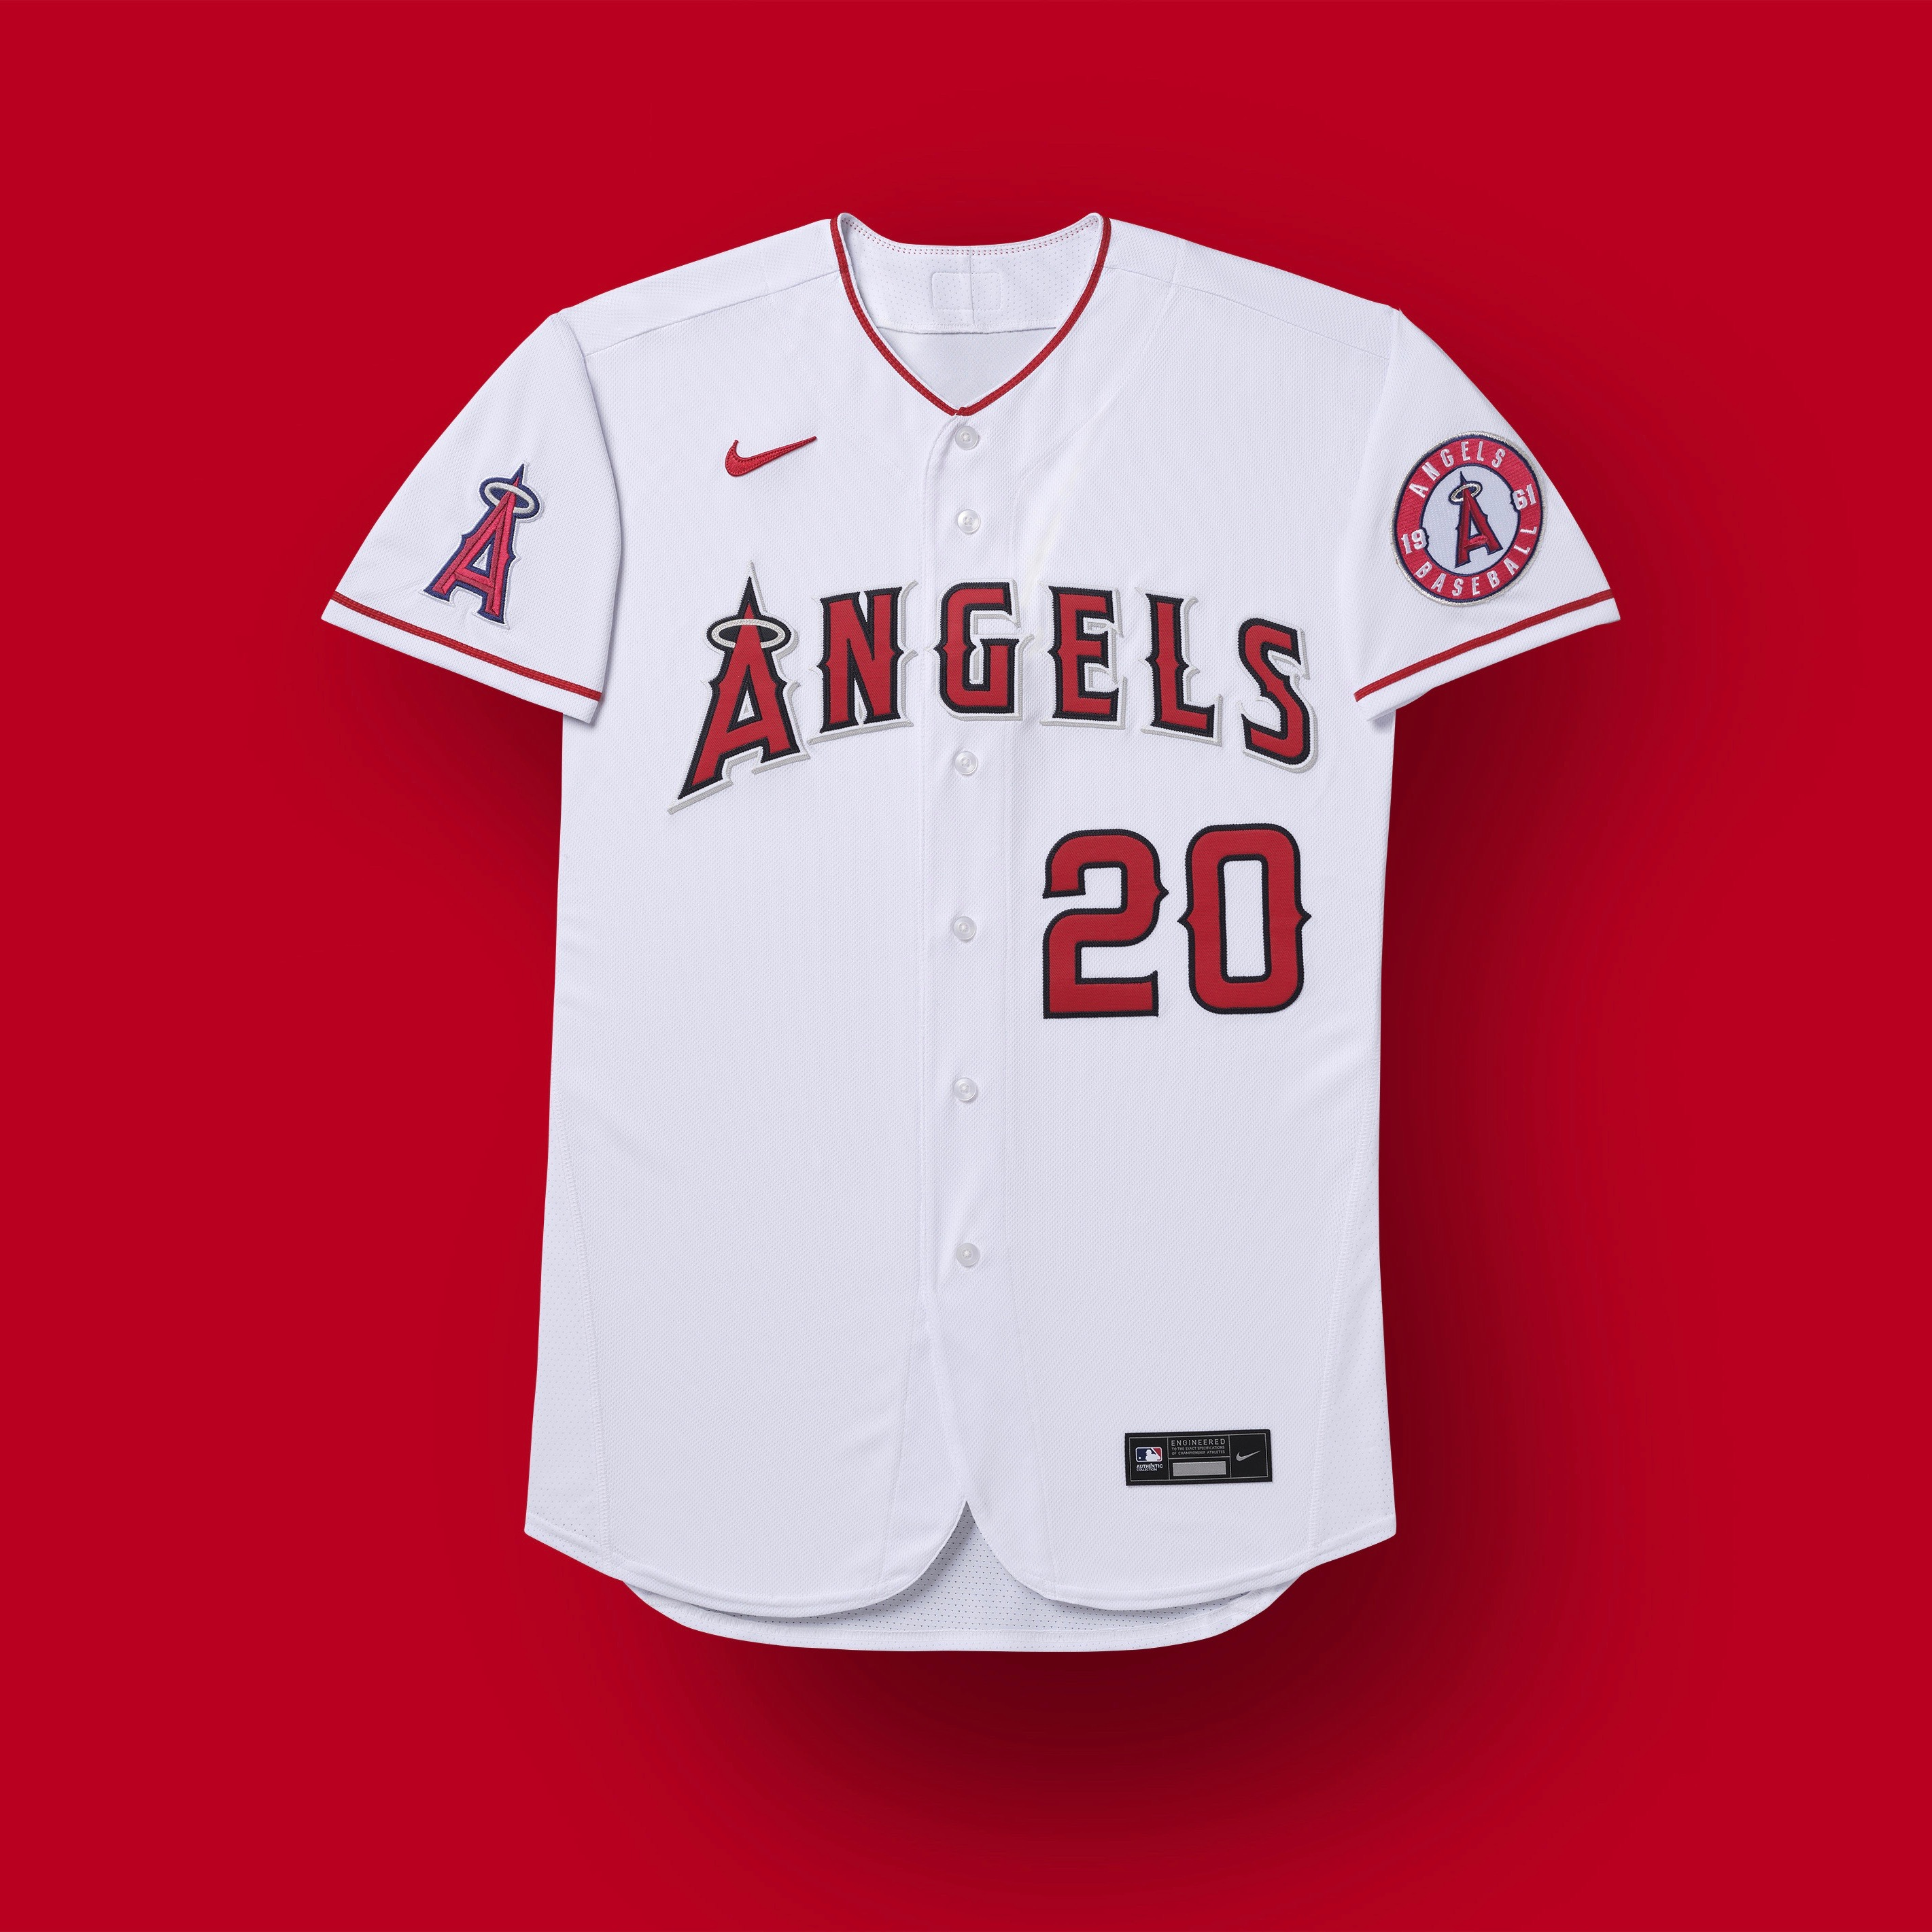 los angeles angels 2020 uniforms